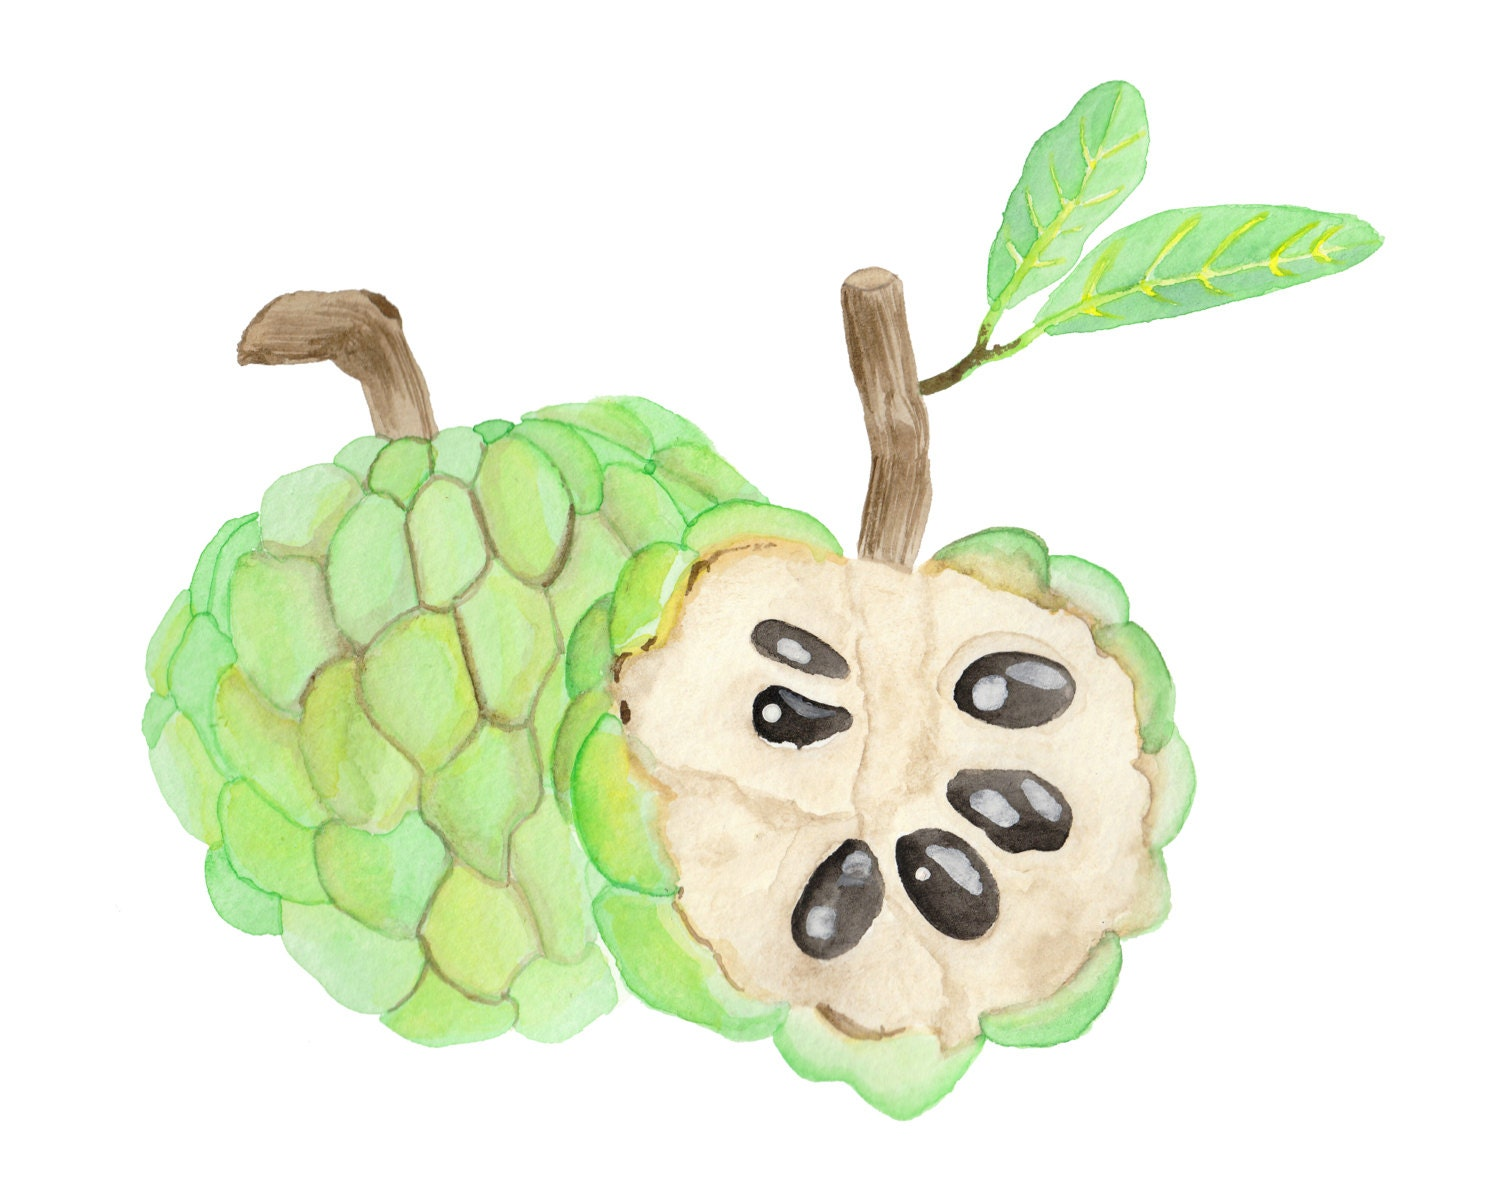 Custard Apple Watercolour Food Illustration Print